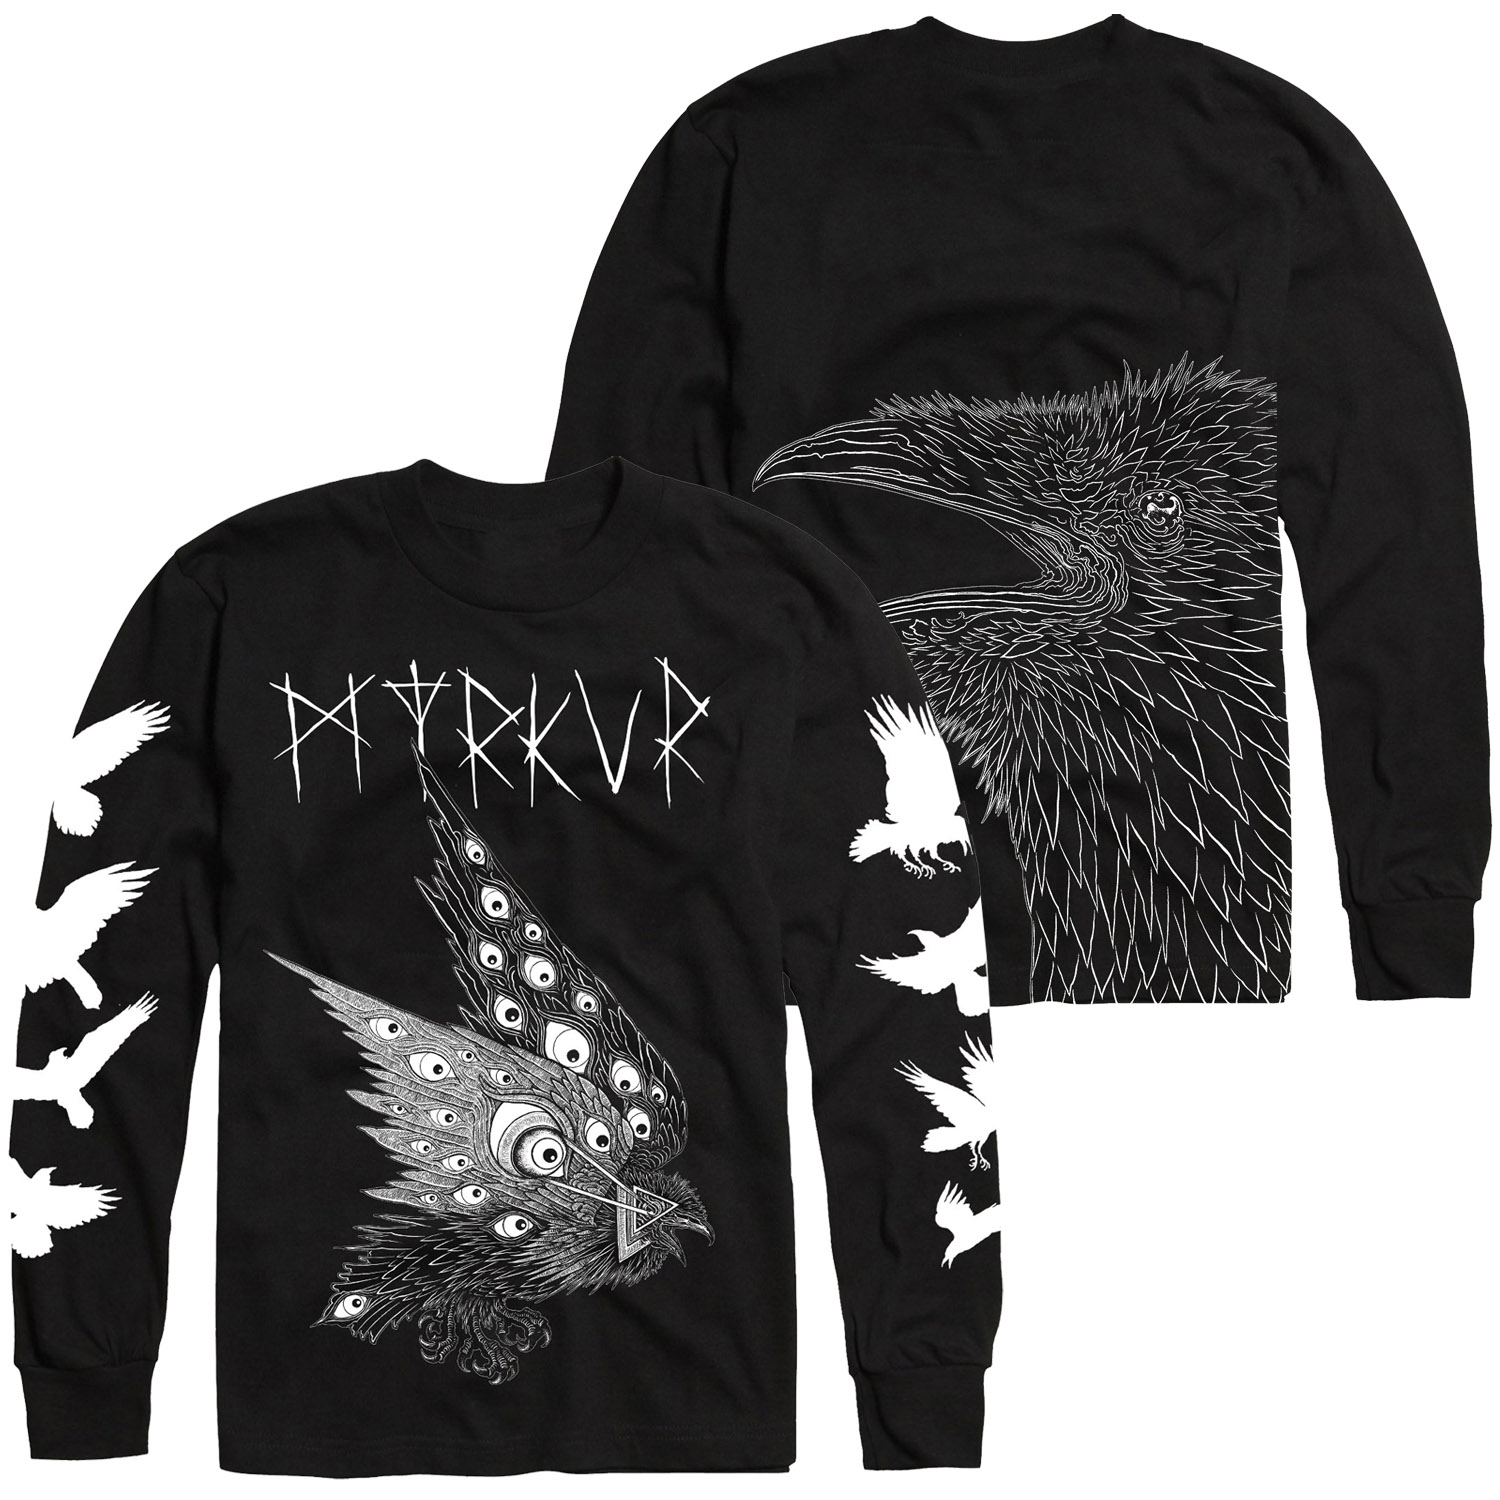 Thomas Hooper Raven Longsleeve Shirt + Folkesange CD Bundle